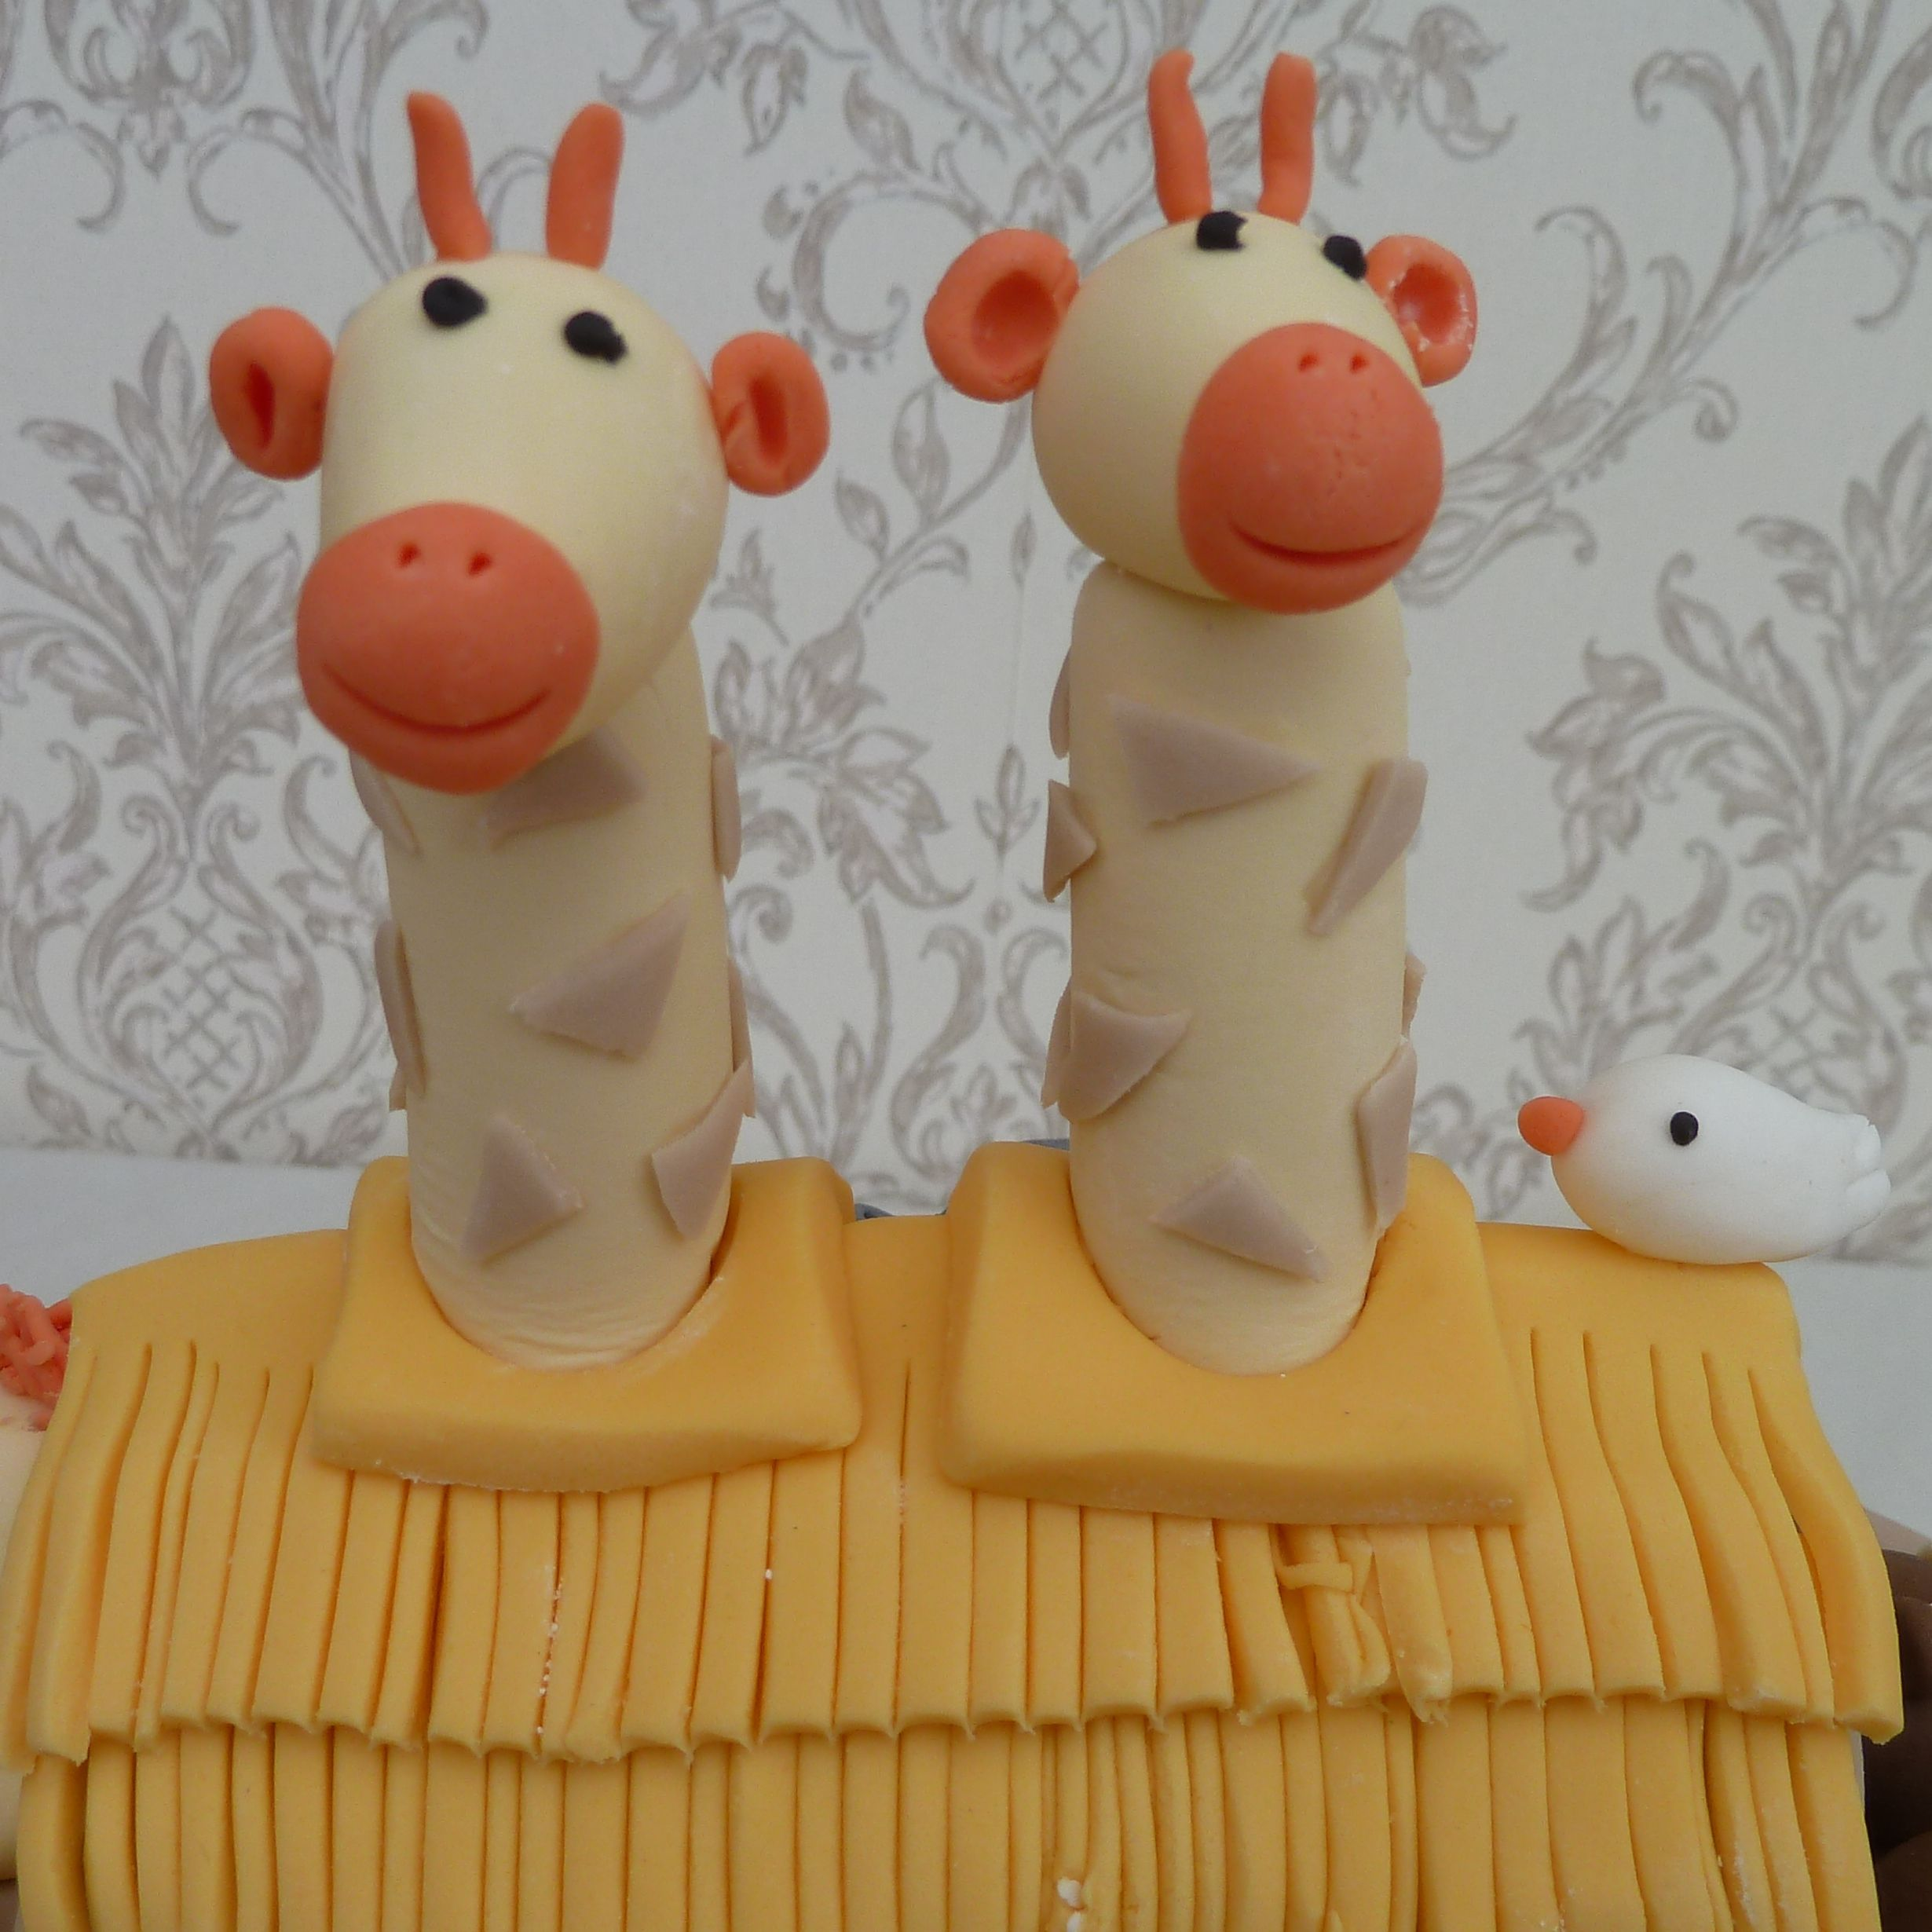 Giraffes on Noahs Ark Cake from www.cakesbykit.co.uk